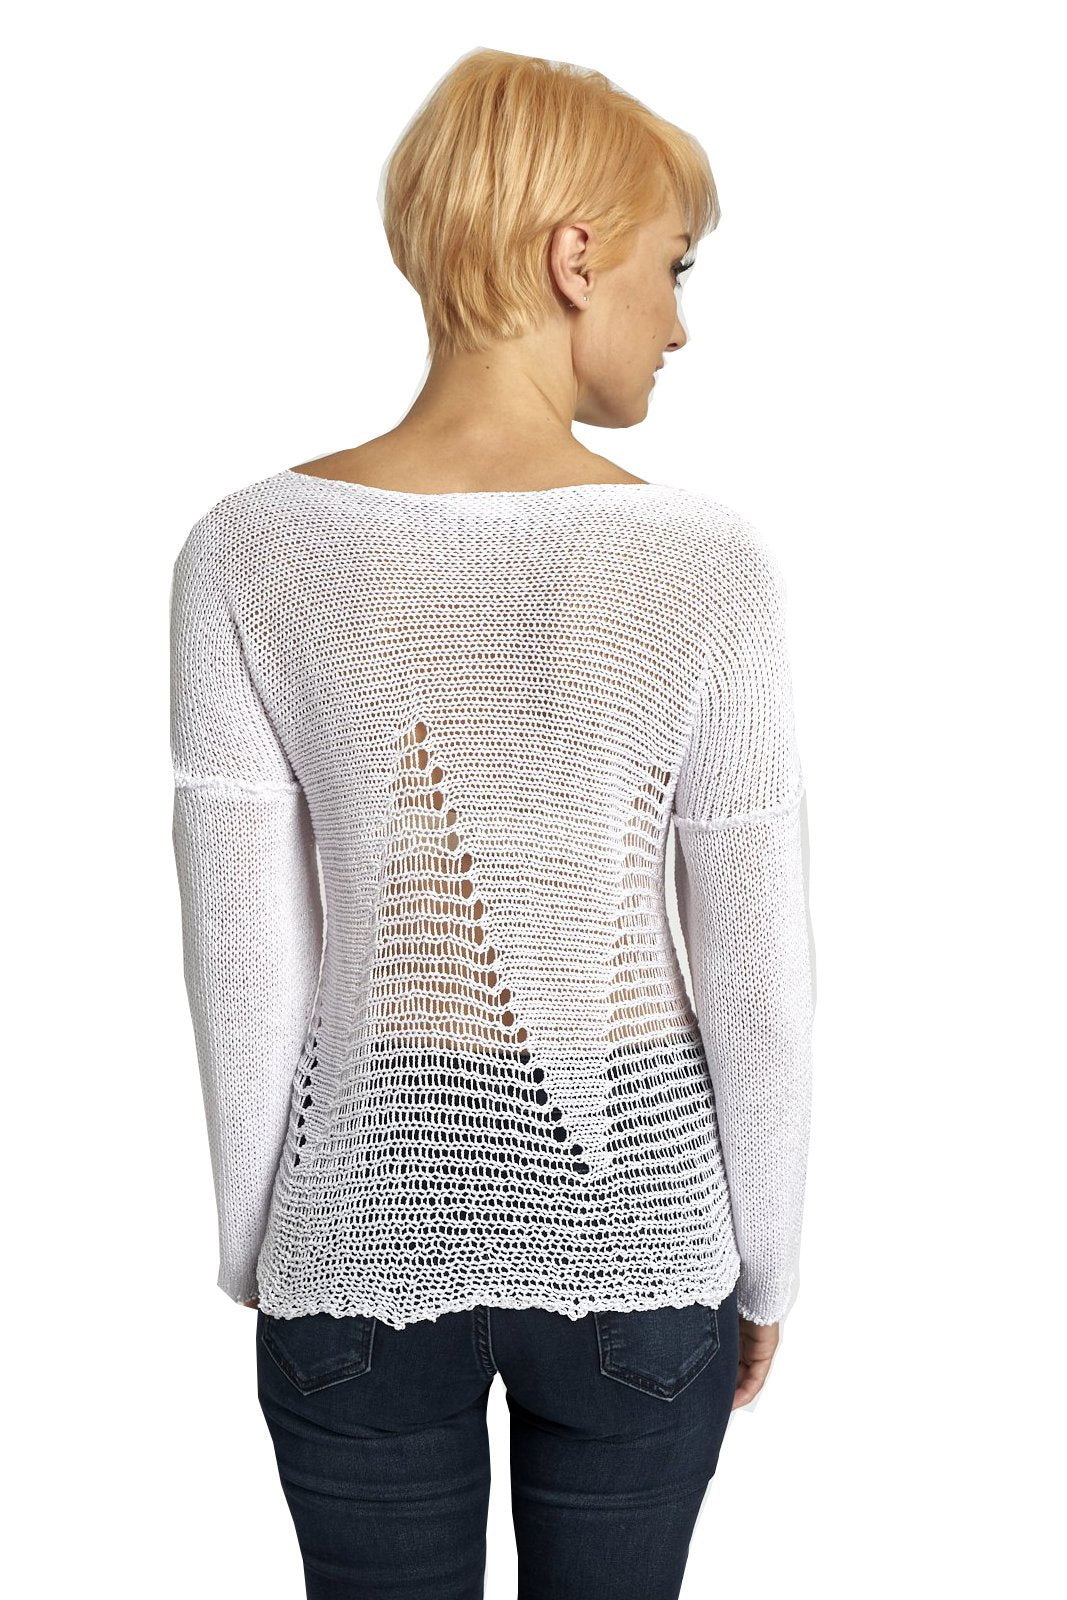 3148 Lightweight Sweater, White